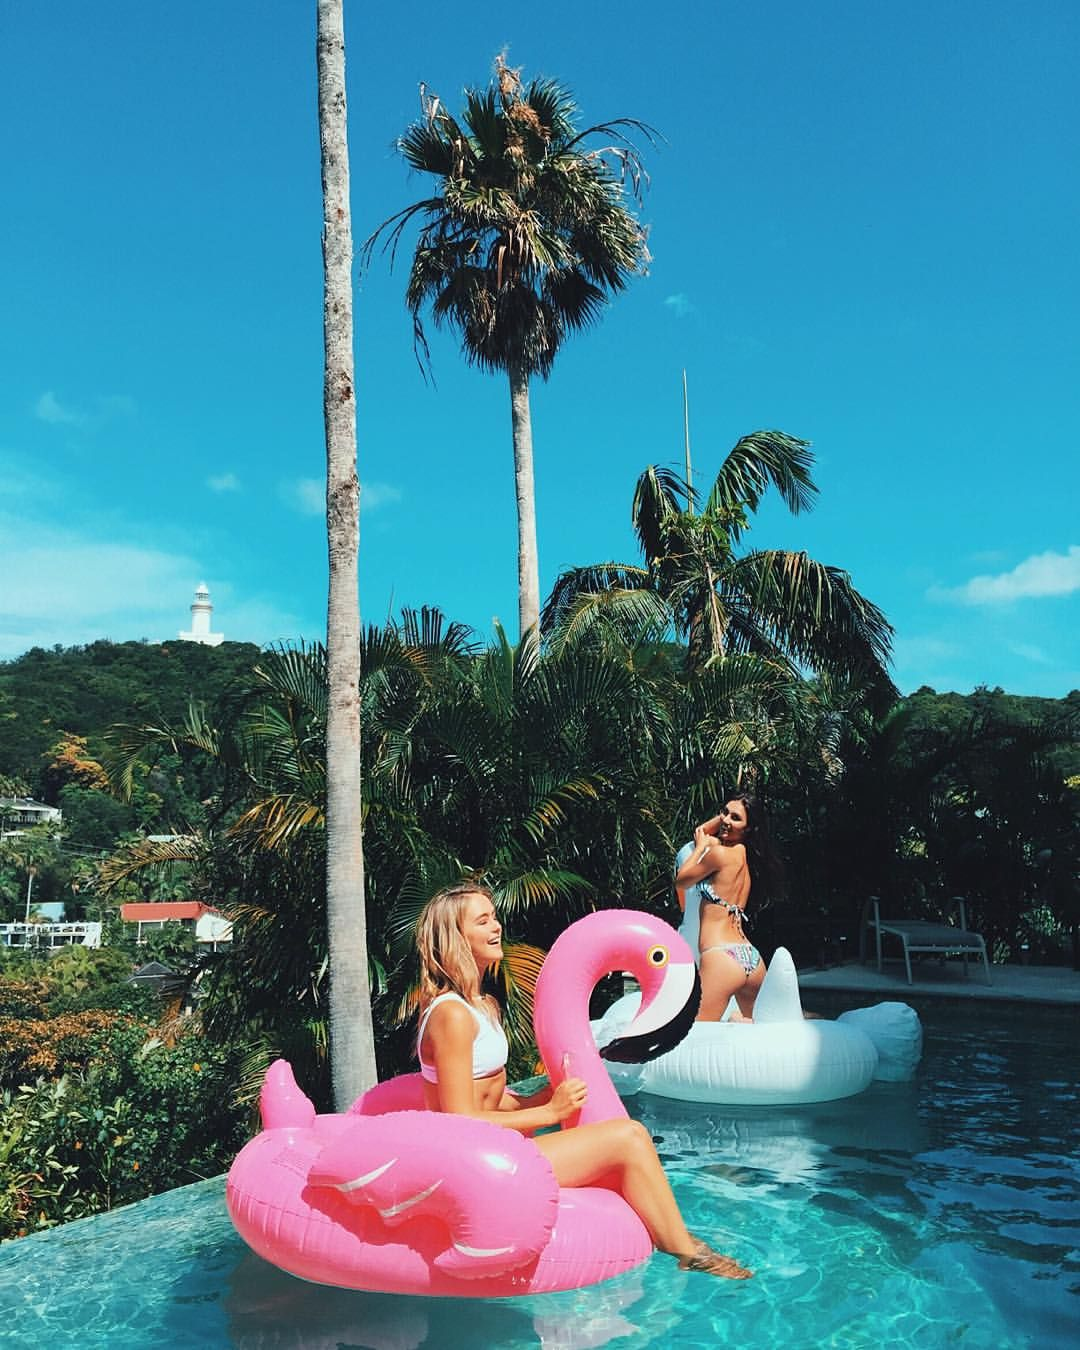 Tigermist On Instagram Infinity Pool Antics Wattaibyronbay Pool Party With Stephclairesmith Stephrayner93 N Summer Pictures Summer Dream Summer Vibes